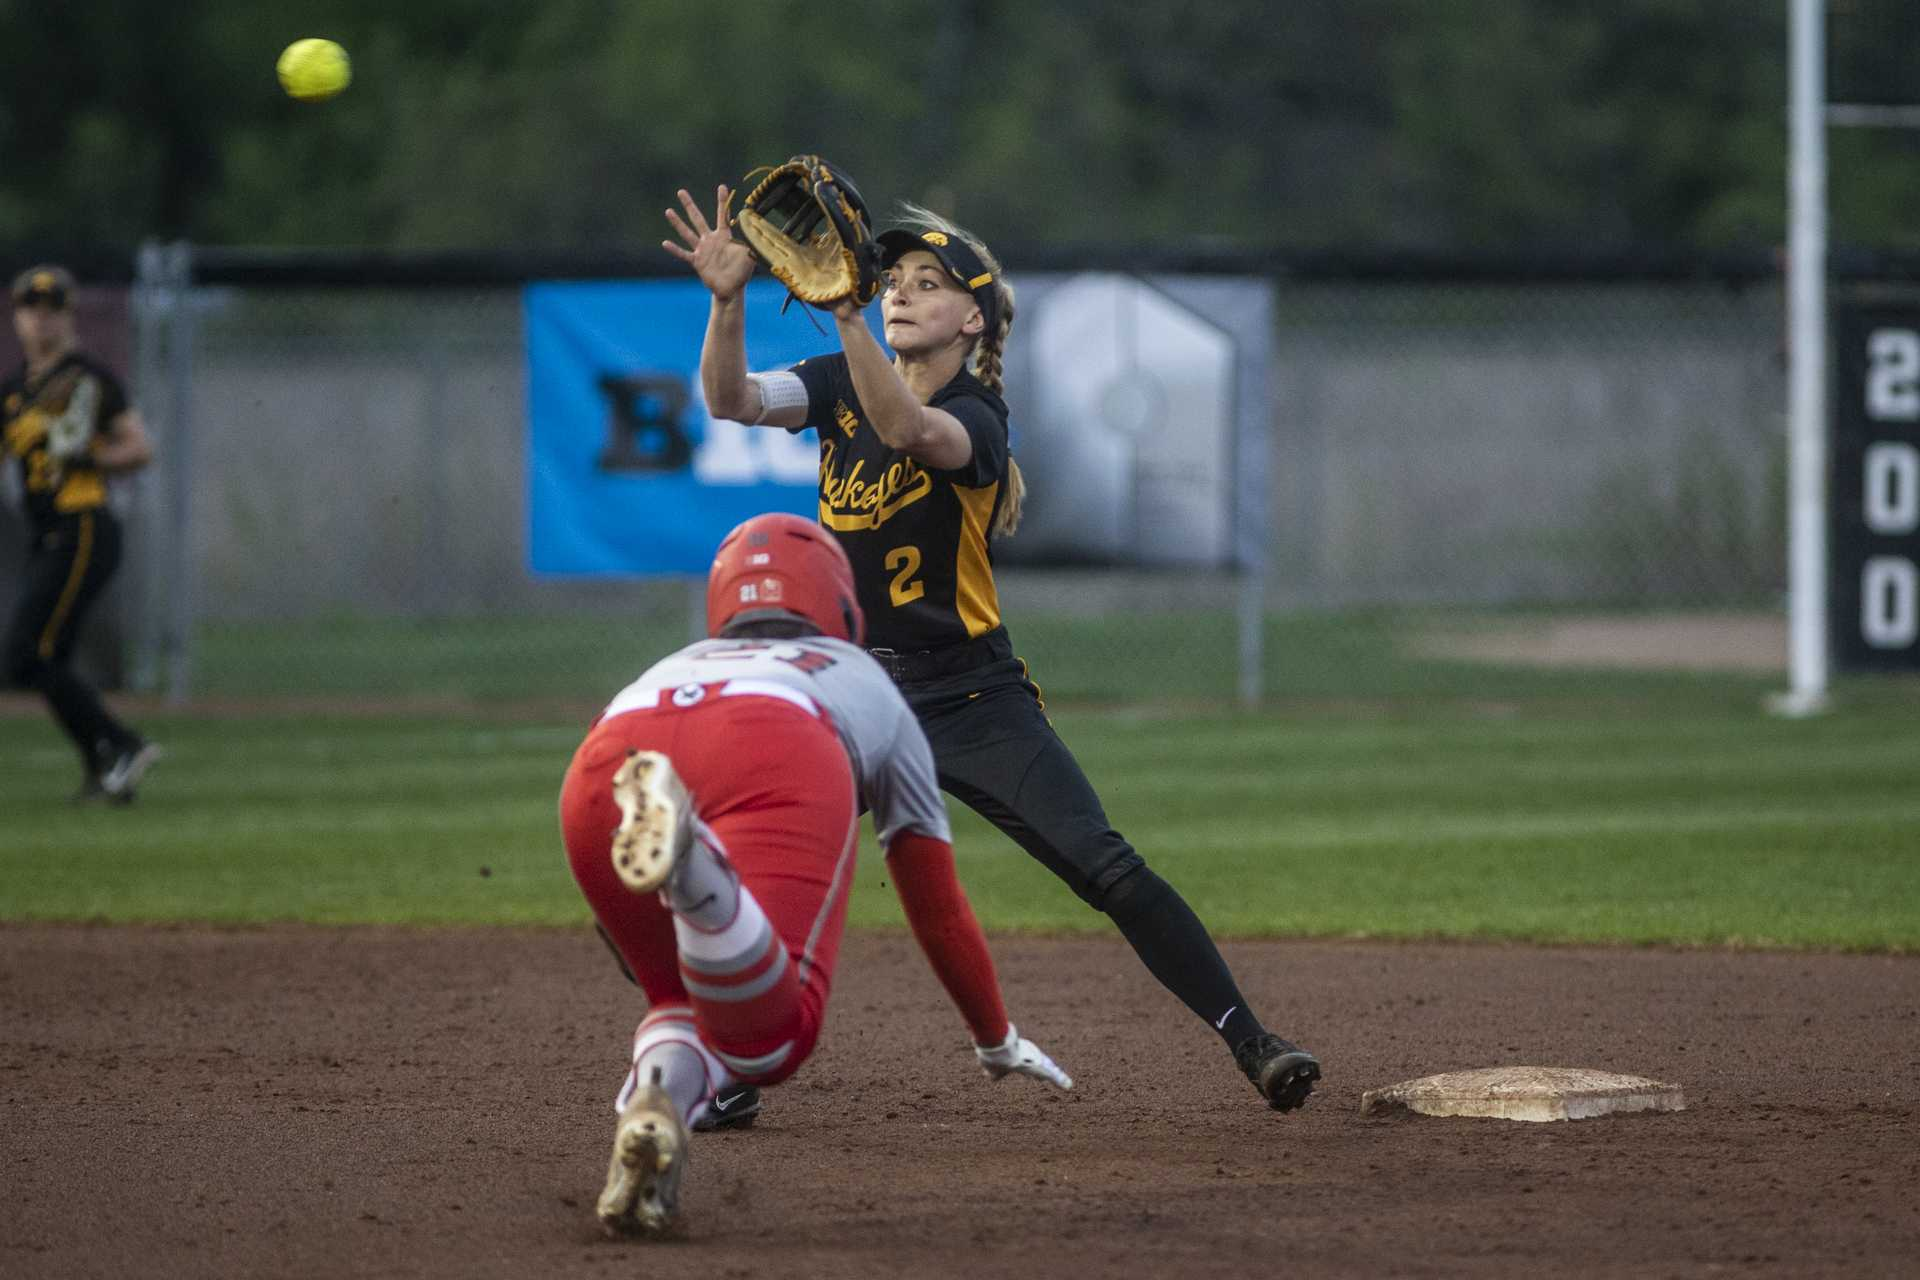 Iowa's Aralee Bogar prepares to receive a throw at second during IowaÕs Big Ten tournament game against Ohio State at the Goodman Softball complex in Madison, WI. The Hawkeyes defeated the Buckeyes 5-1. (Nick Rohlman/The Daily Iowan)